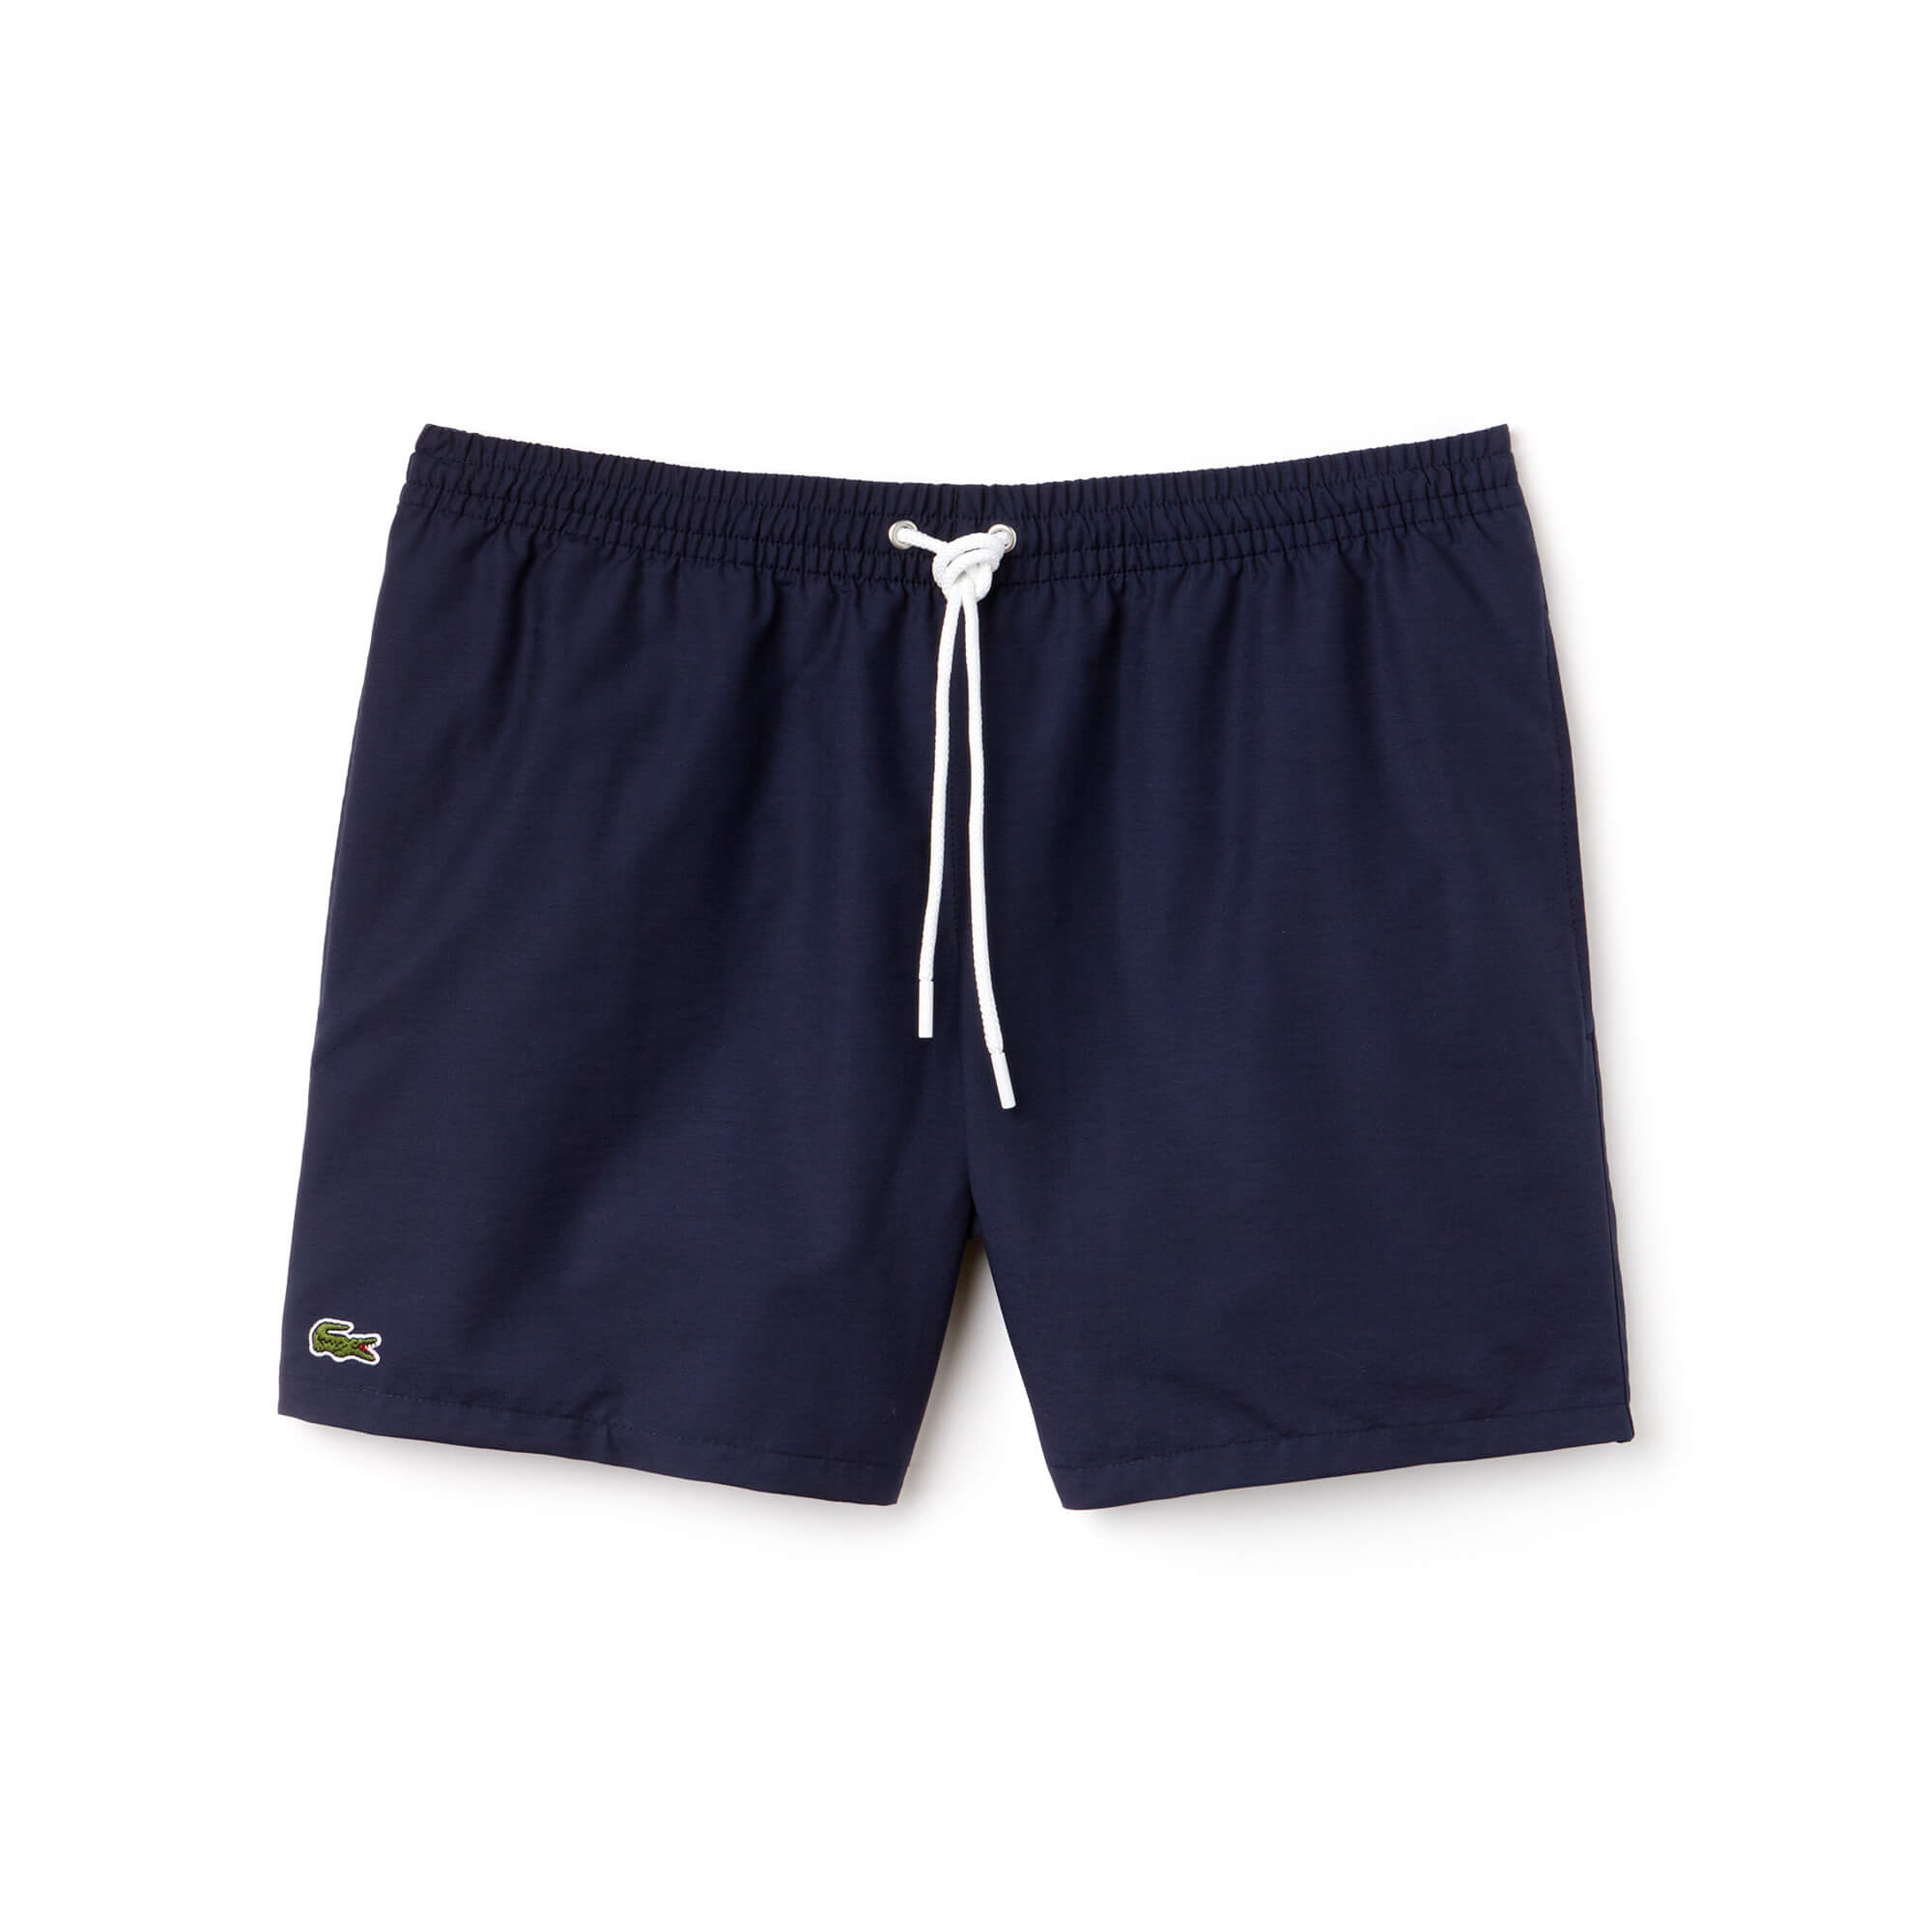 Lacoste Men's Swimming Trunks İn Taffeta